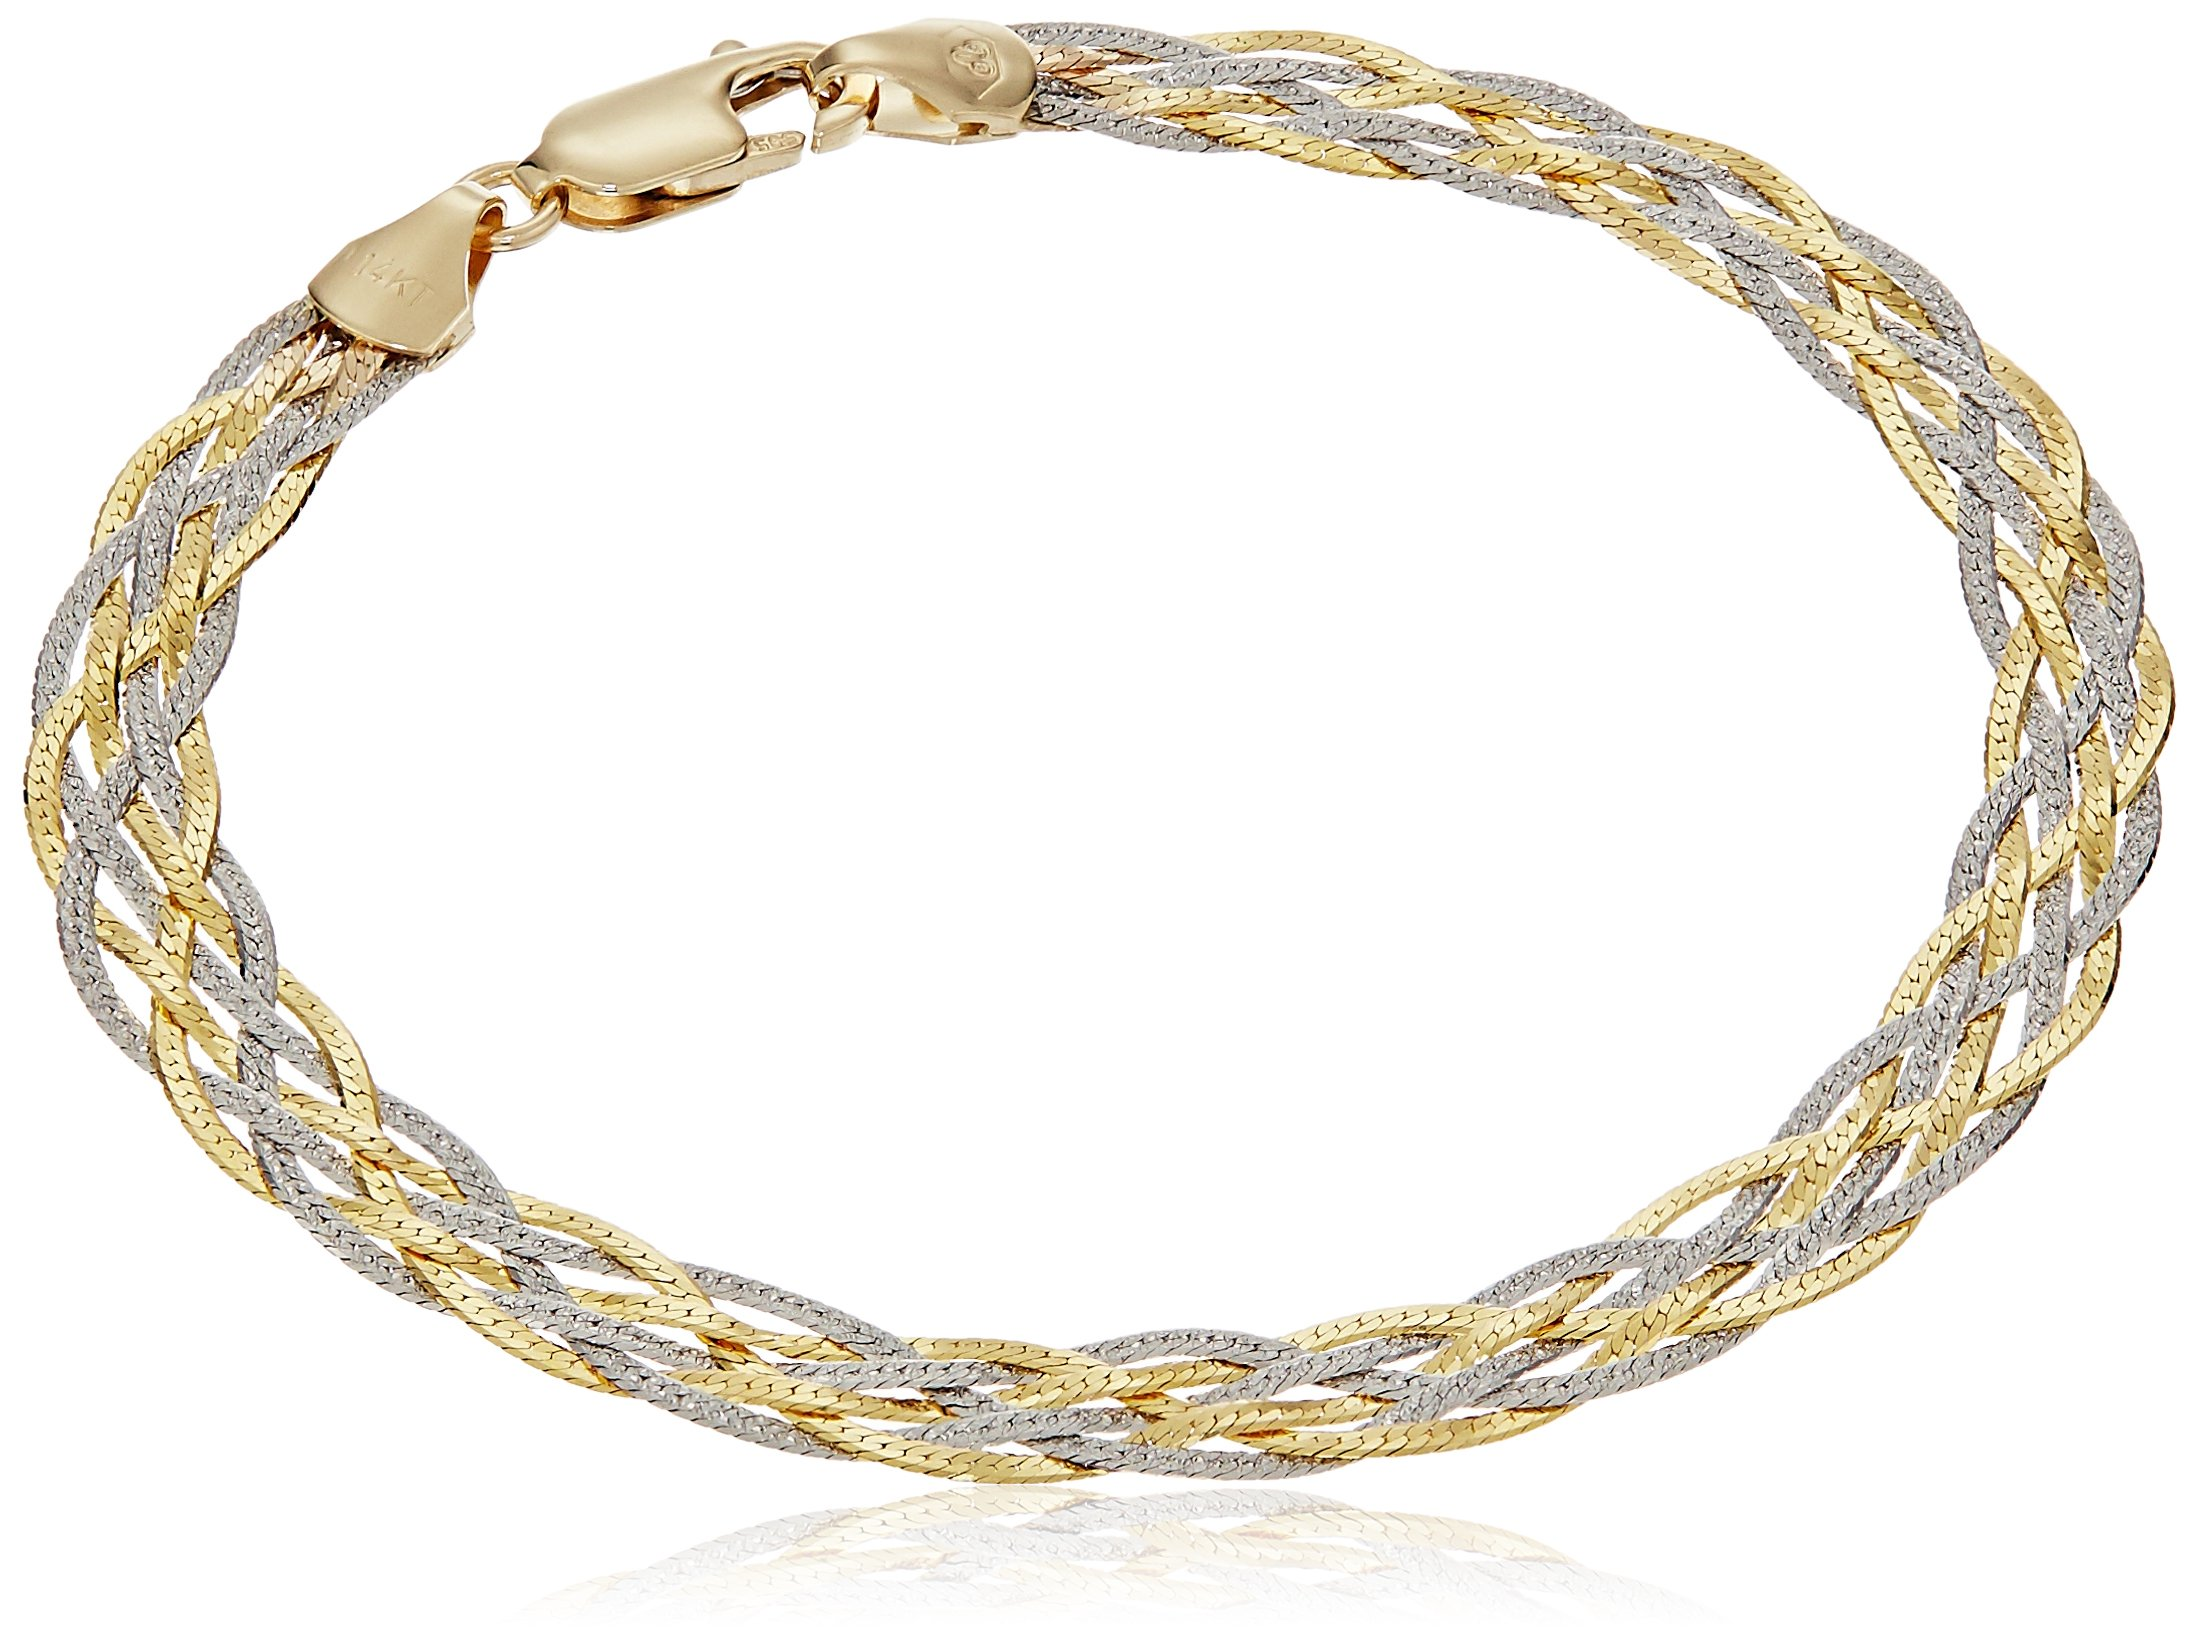 14k Gold Two-Tone Yellow and White Textured Braided Herringbone Chain Link Bracelet, 7''